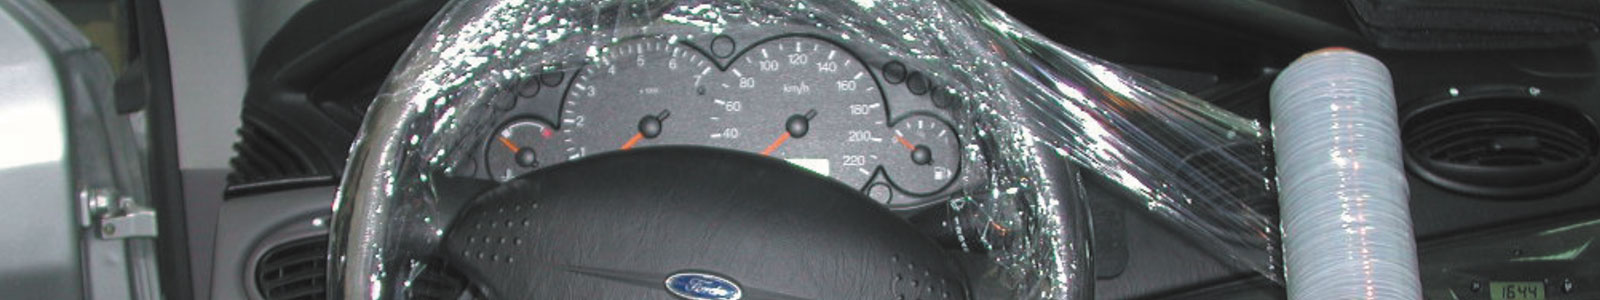 Automotive Service Products Stretch Wheel Cover